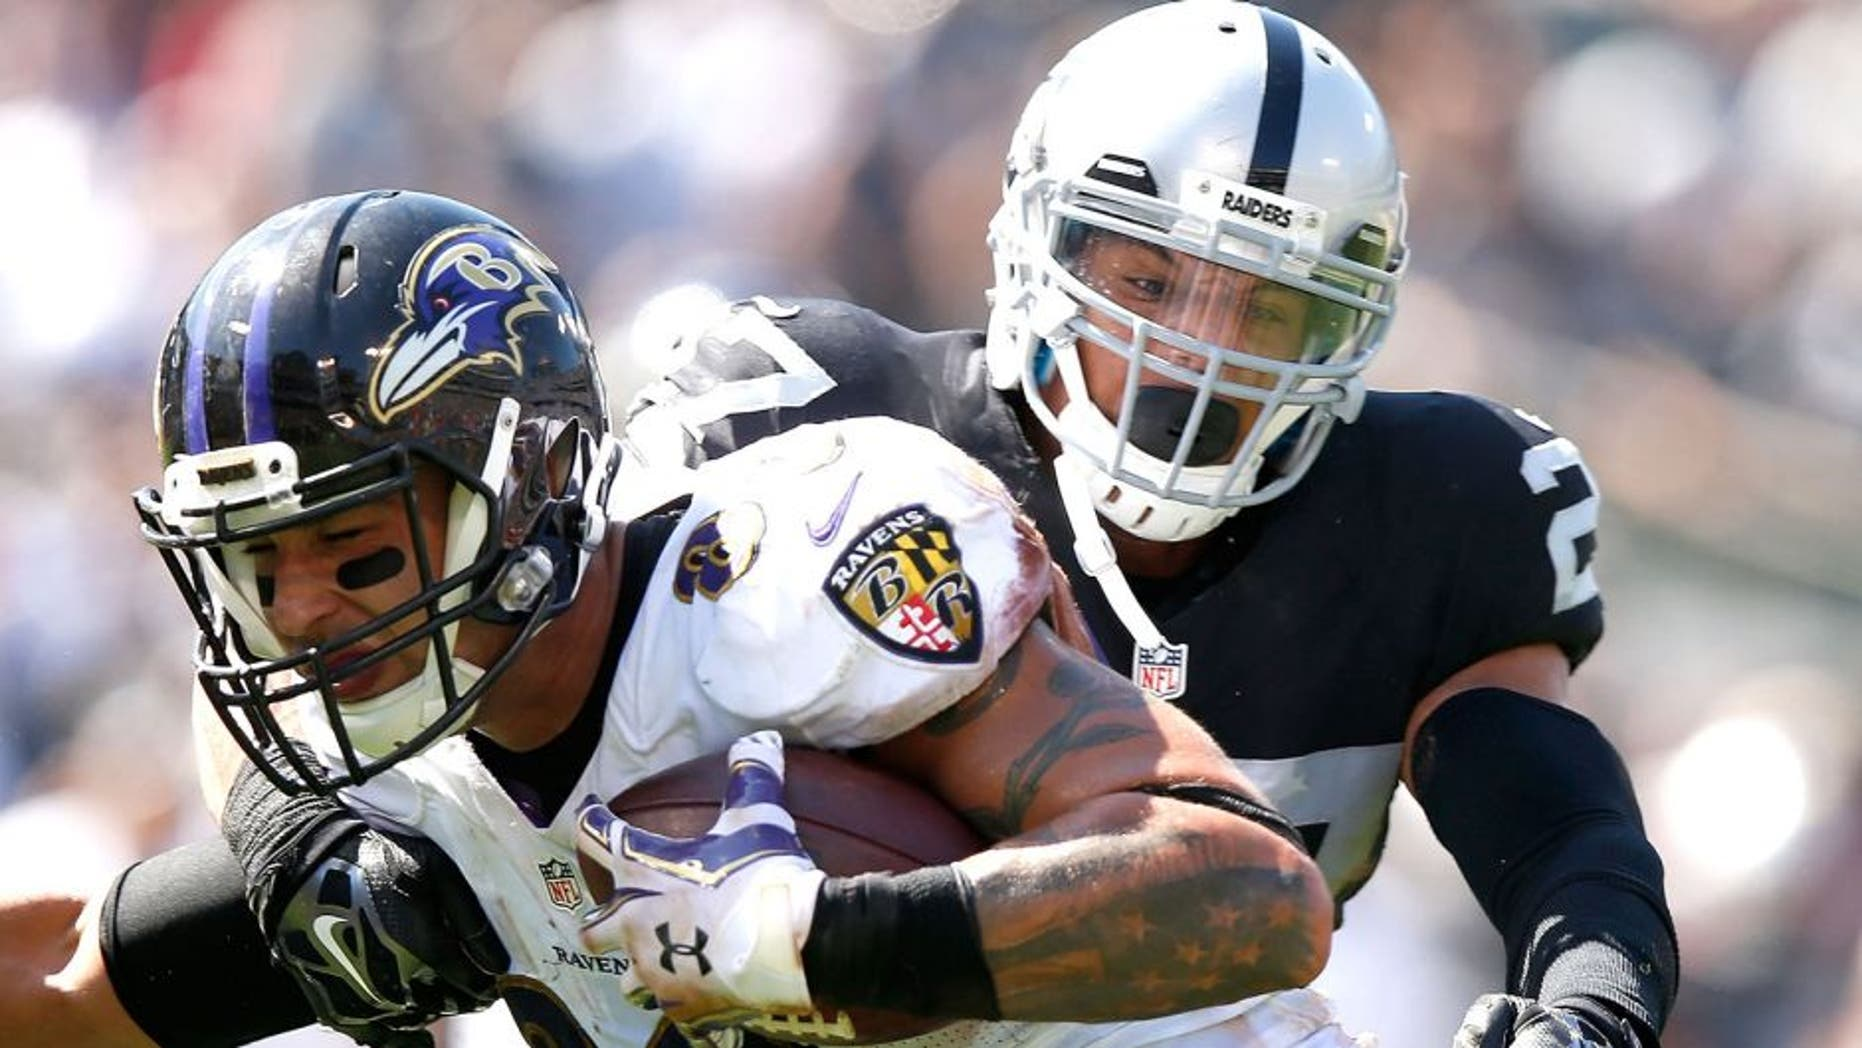 OAKLAND, CA - SEPTEMBER 20: Crockett Gillmore #80 of the Baltimore Ravens carries for a touchdown against the block of Taylor Mays #27 of the Oakland Raiders in the second quarter against the Oakland Raiders at Oakland-Alameda County Coliseum on September 20, 2015 in Oakland, California. (Photo by Ezra Shaw/Getty Images)